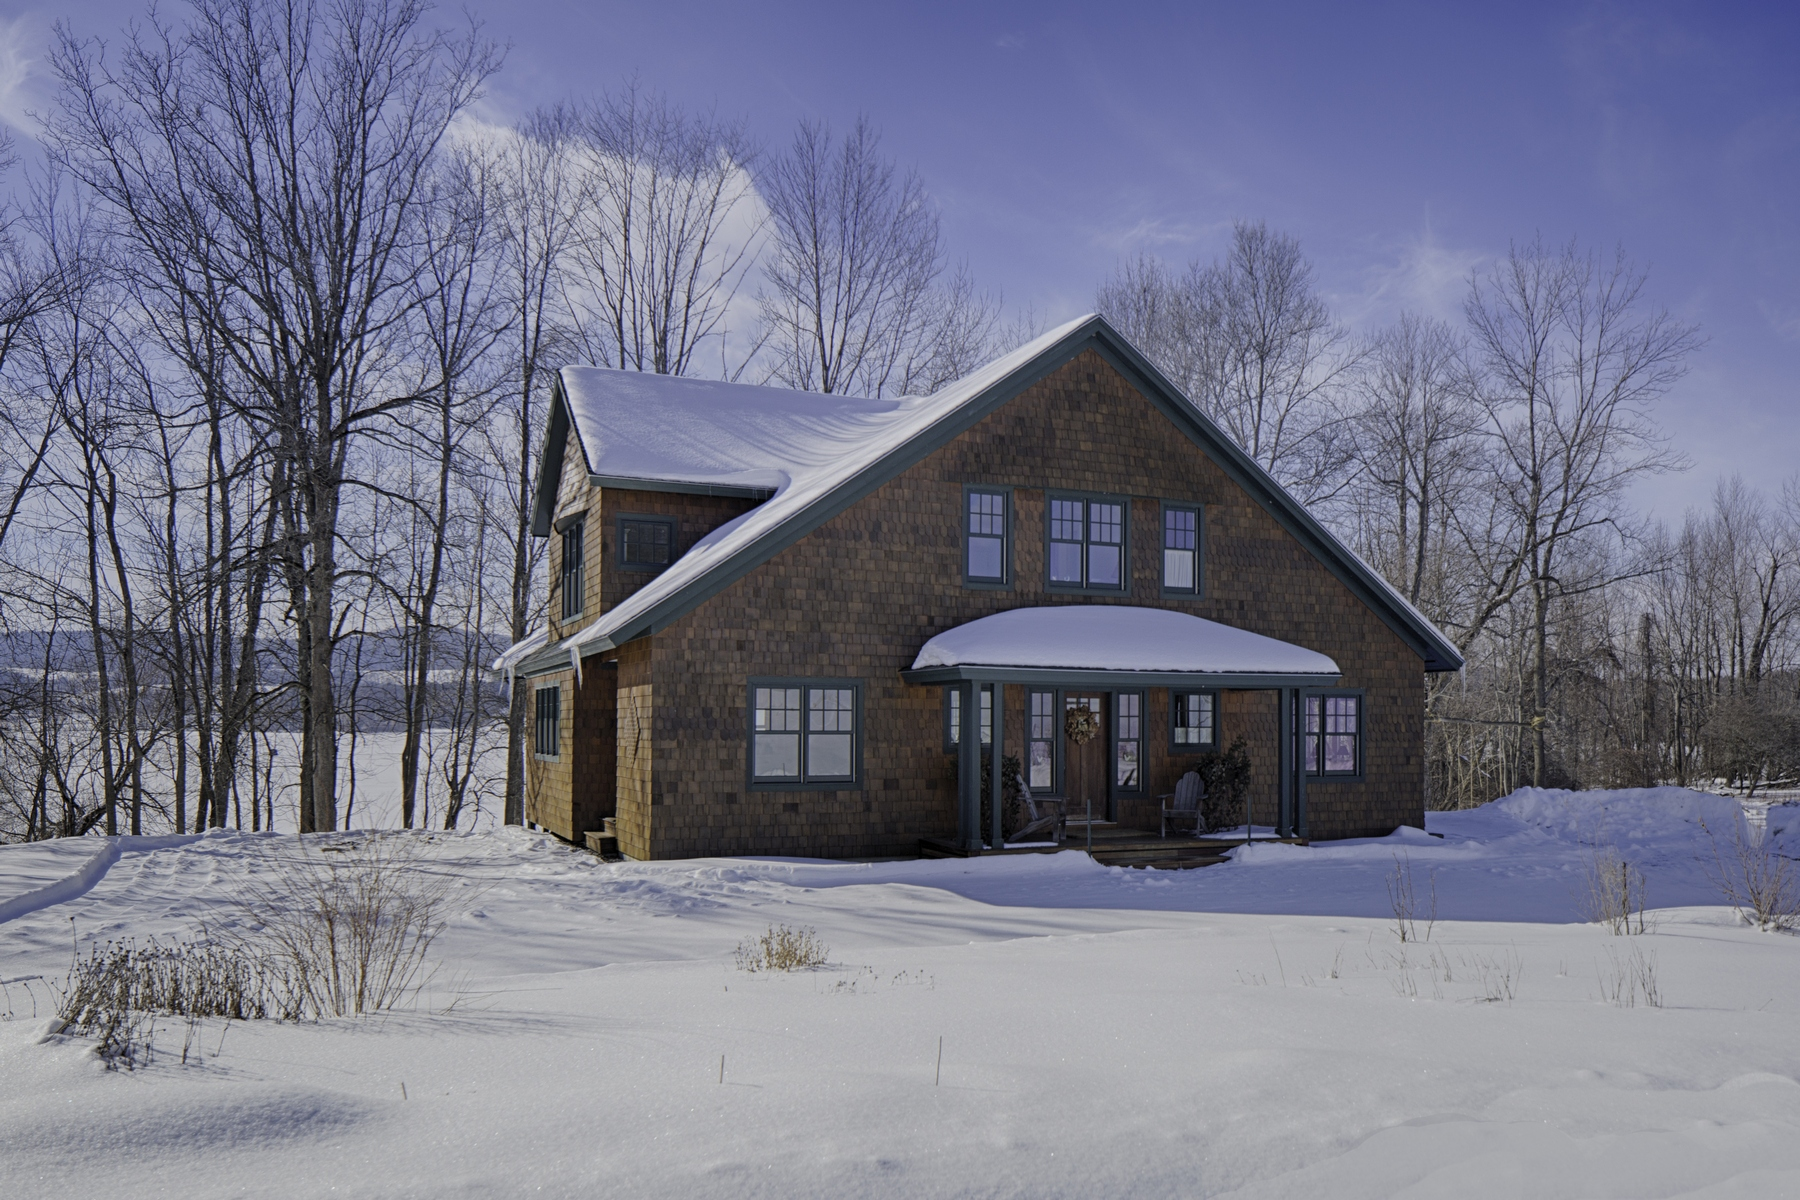 Maison unifamiliale pour l Vente à Elegant and Serene Home on Otsego Lake 418 Public Landing Rd Cooperstown, New York 13326 États-Unis